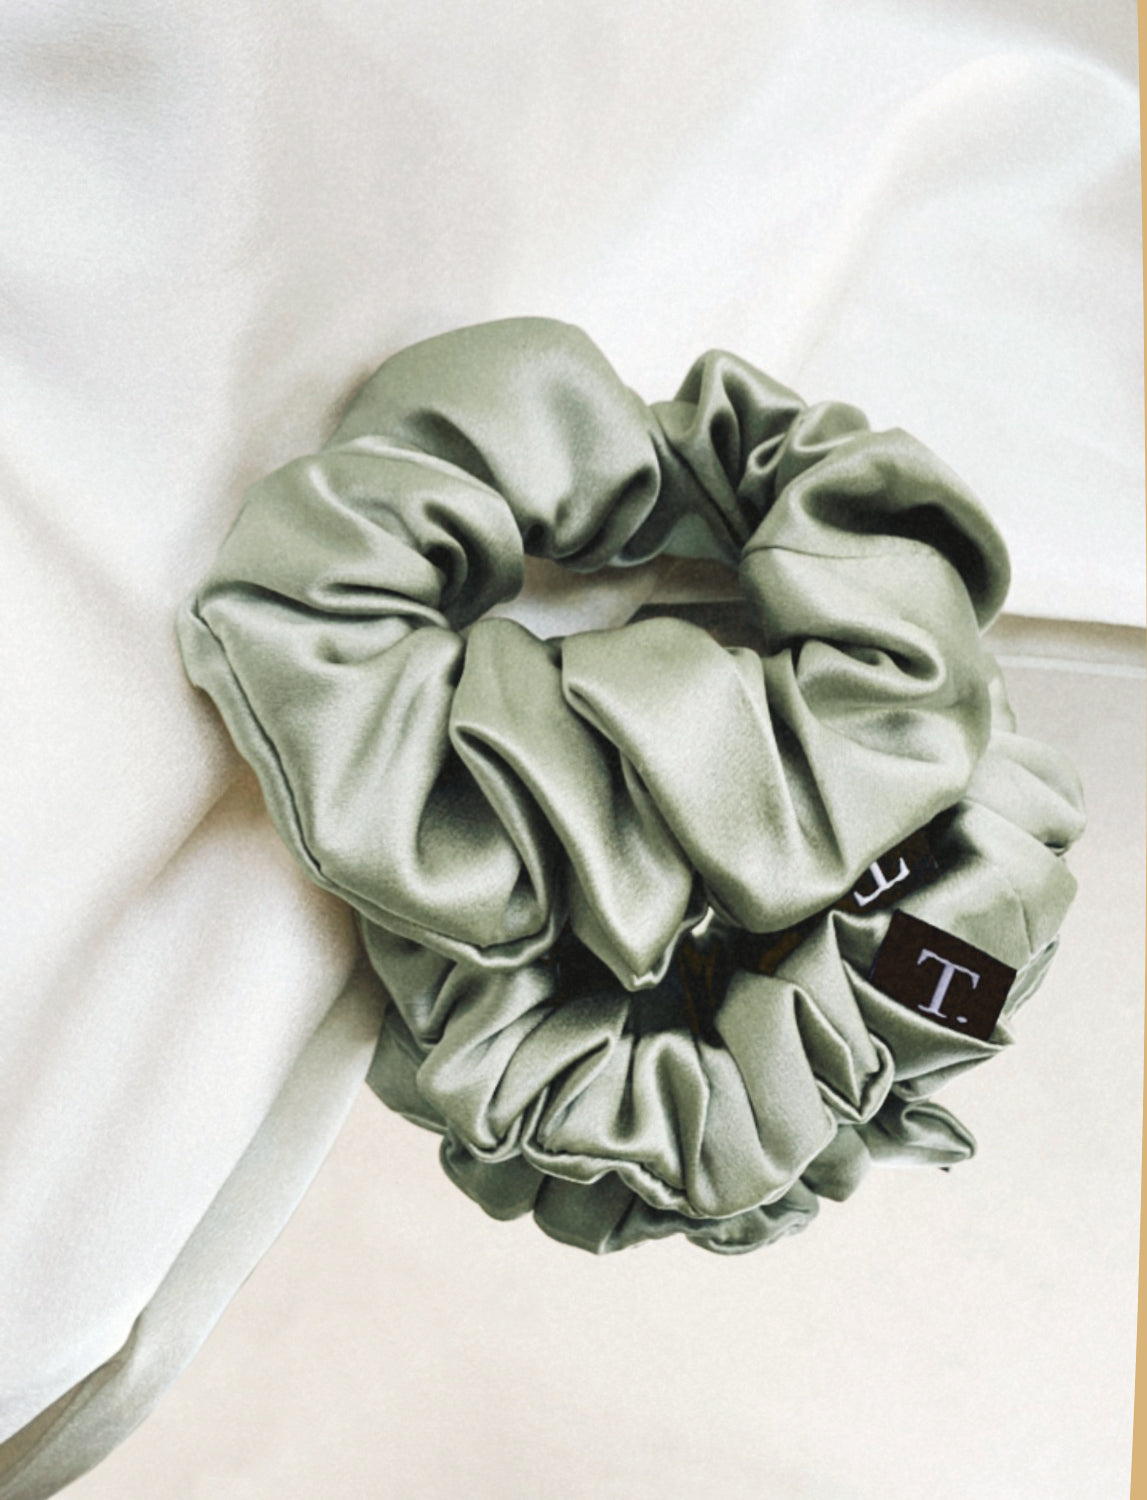 Tender Objects silk scrunchie in Natural Sage